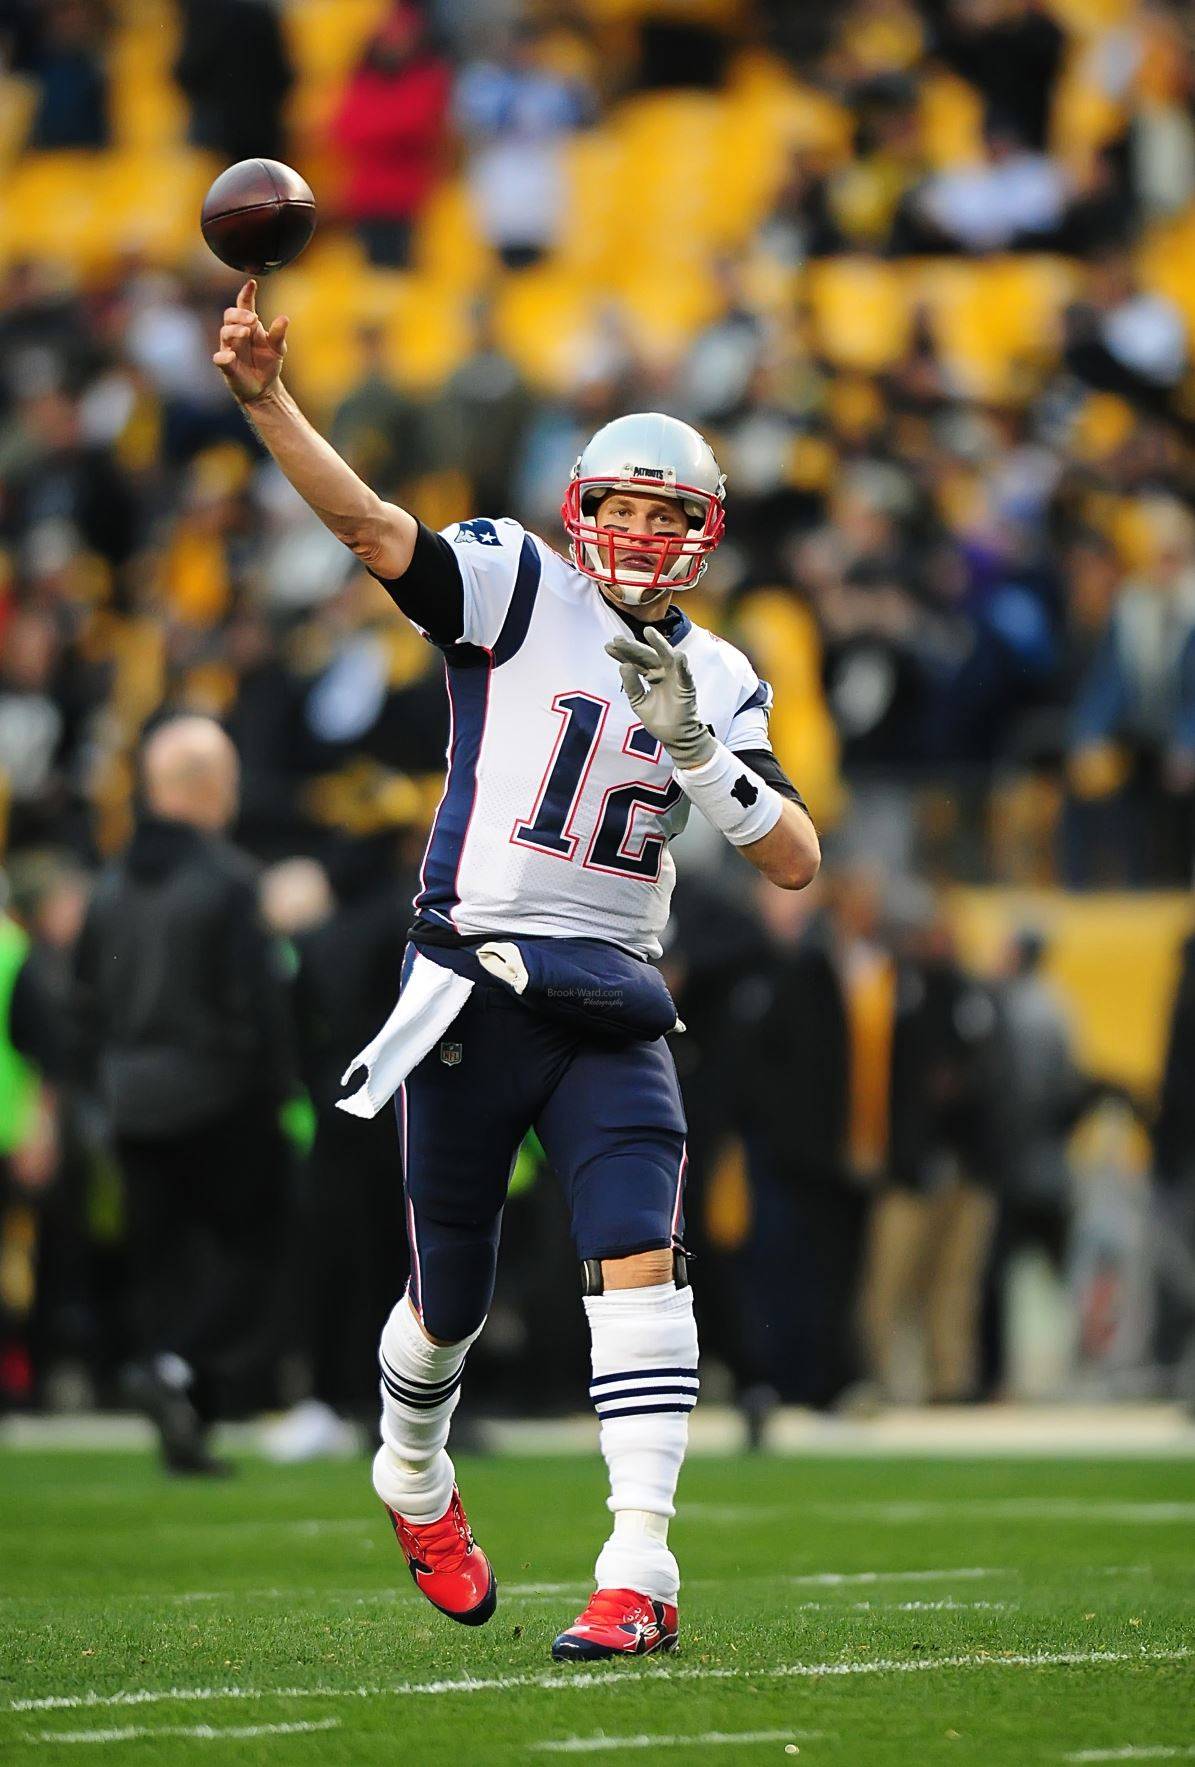 GOAT (Greatest Of All Time)